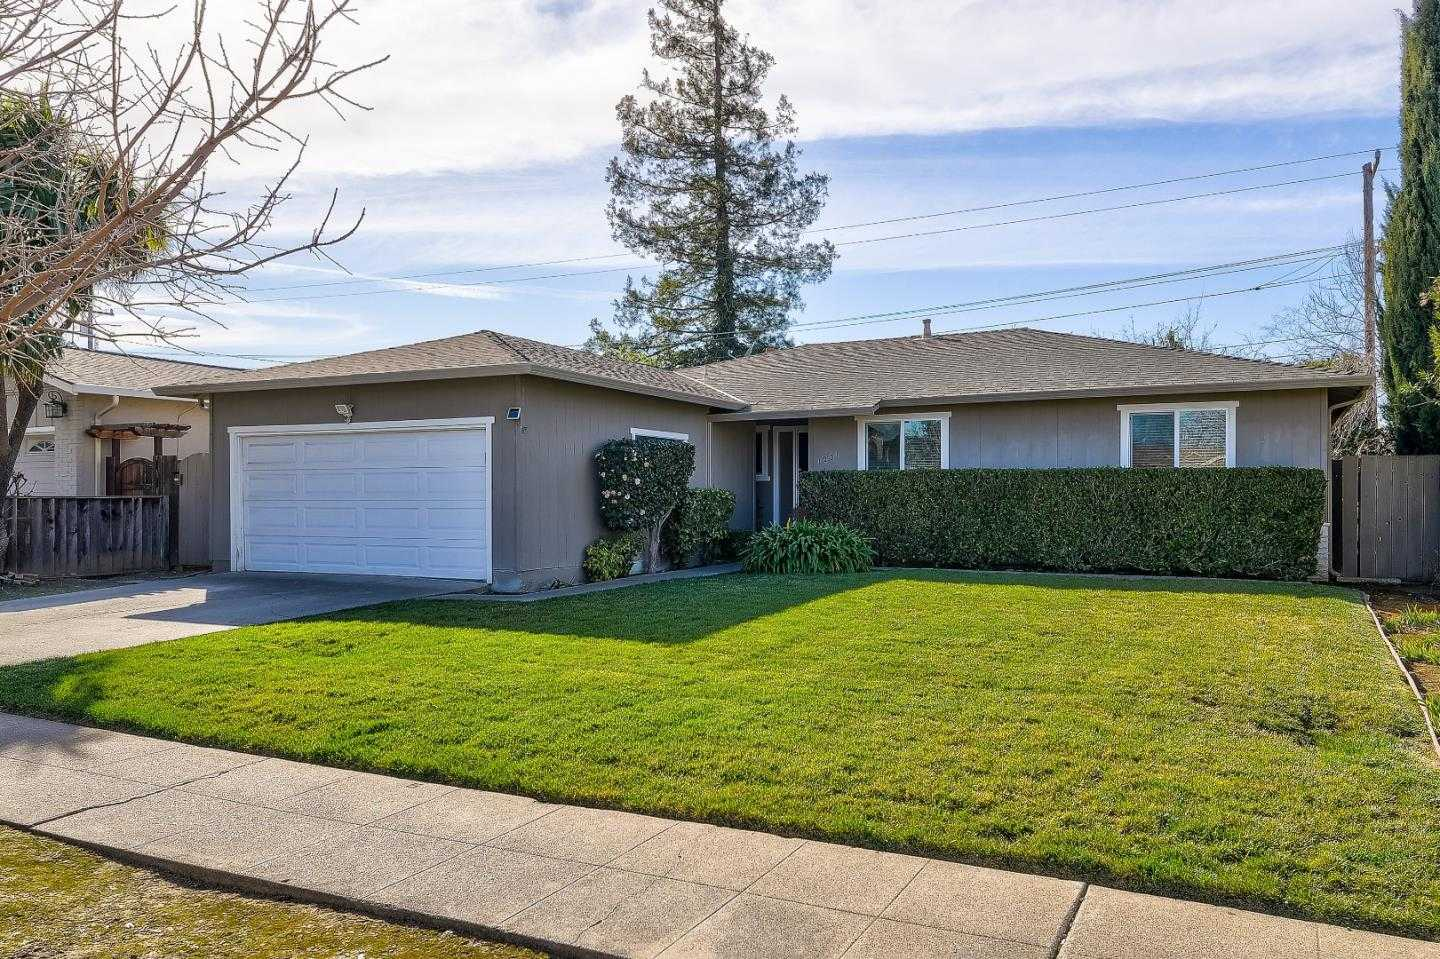 $1,399,000 - 4Br/2Ba -  for Sale in San Jose